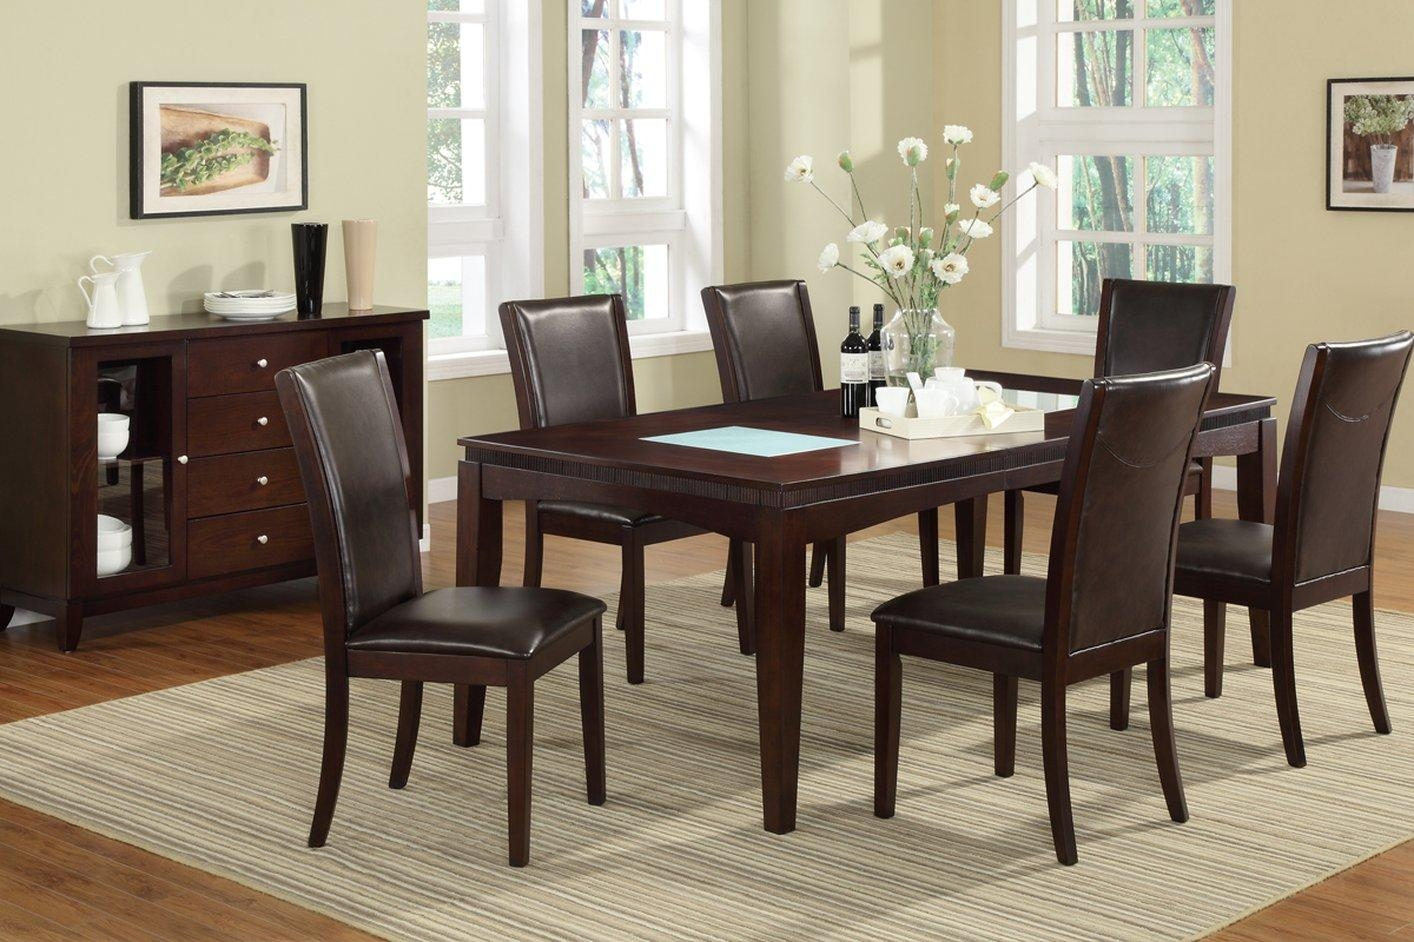 Poundex F2165 Brown Glass Dining Table – Steal A Sofa Furniture Regarding Dining Table With Sofa Chairs (Image 15 of 20)